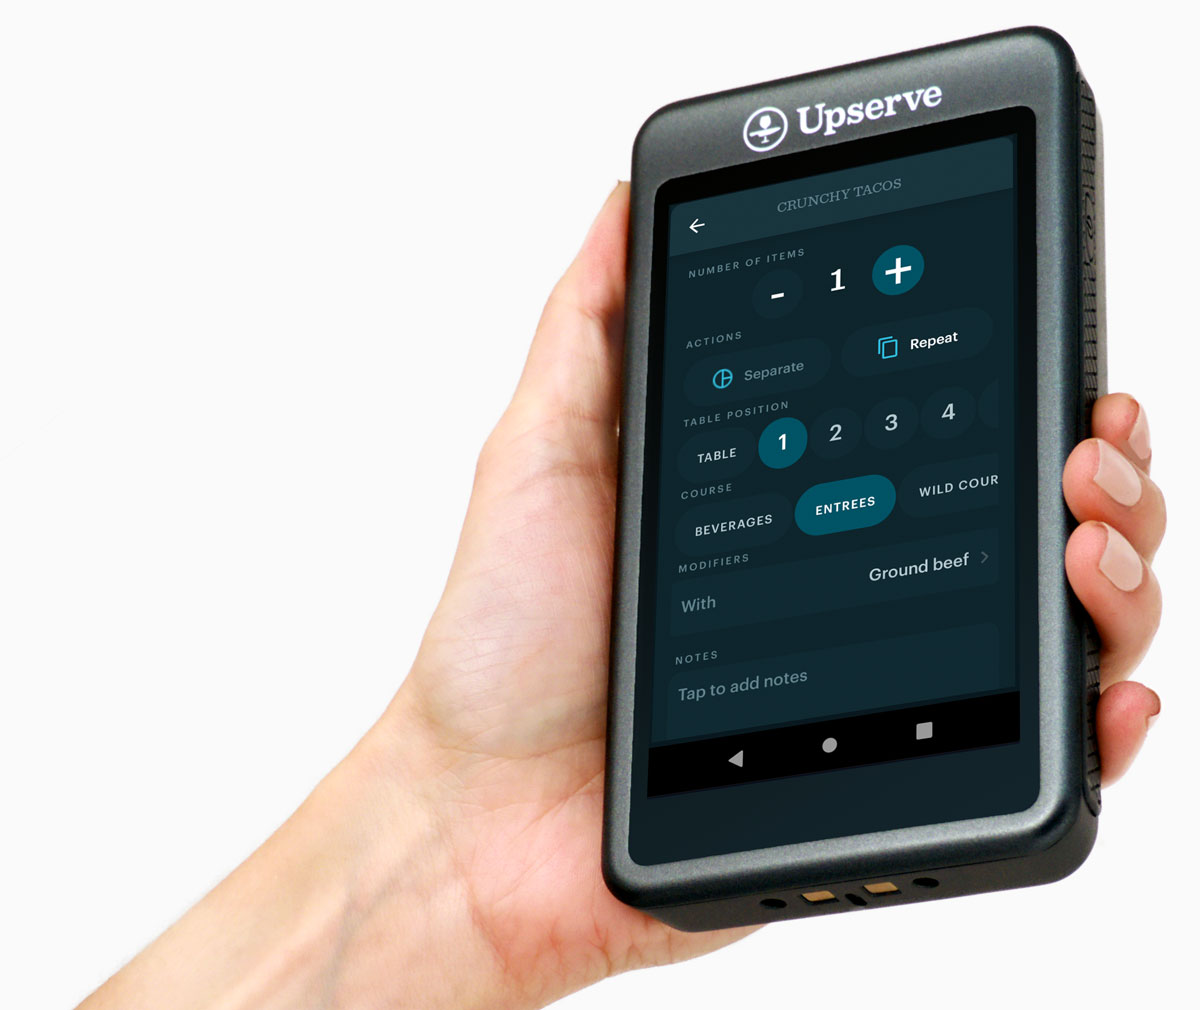 Upserve Tableside Mobile POS in server's hand